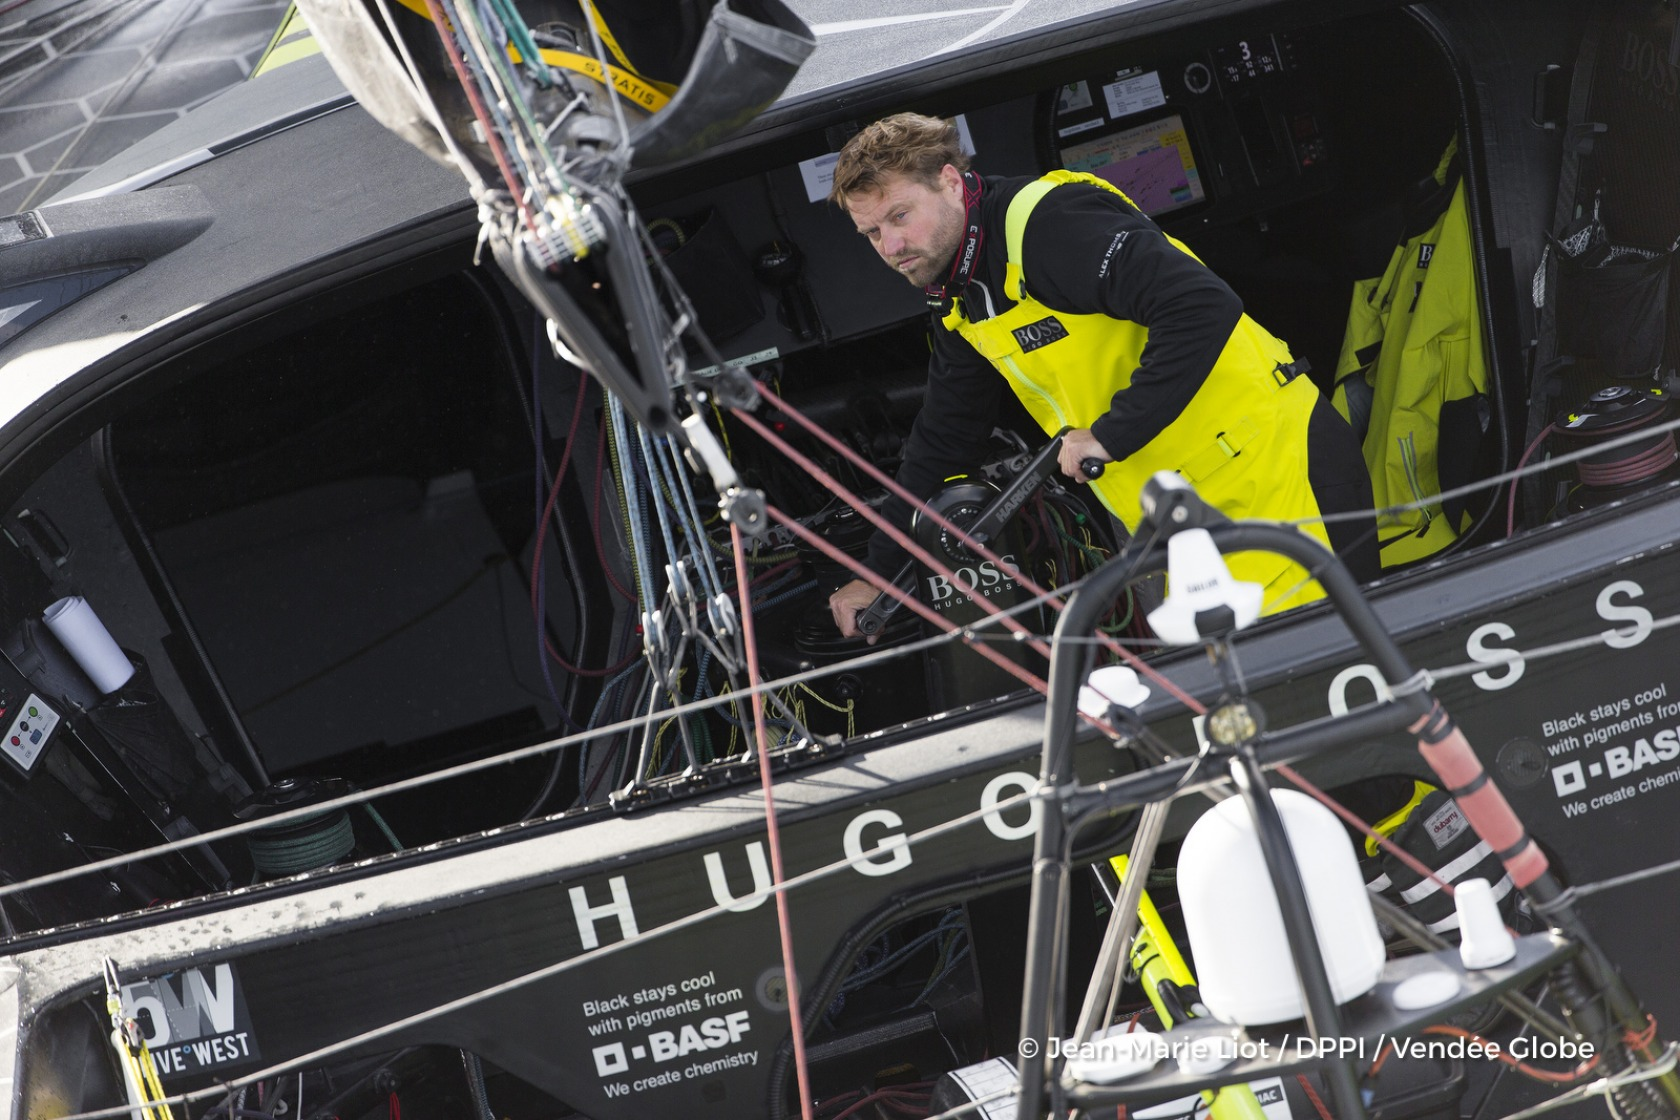 Alex Thomson (GBR), skipper Hugo Boss, at start of the Vendee Globe, in Les Sables d'Olonne, France, on November 6th, 2016 - Photo Jean-Marie Liot / DPPI / Vendee GlobeAlex Thomson (GBR), skipper Hugo Boss, au départ du Vendée Globe, aux Sables d'Olonne